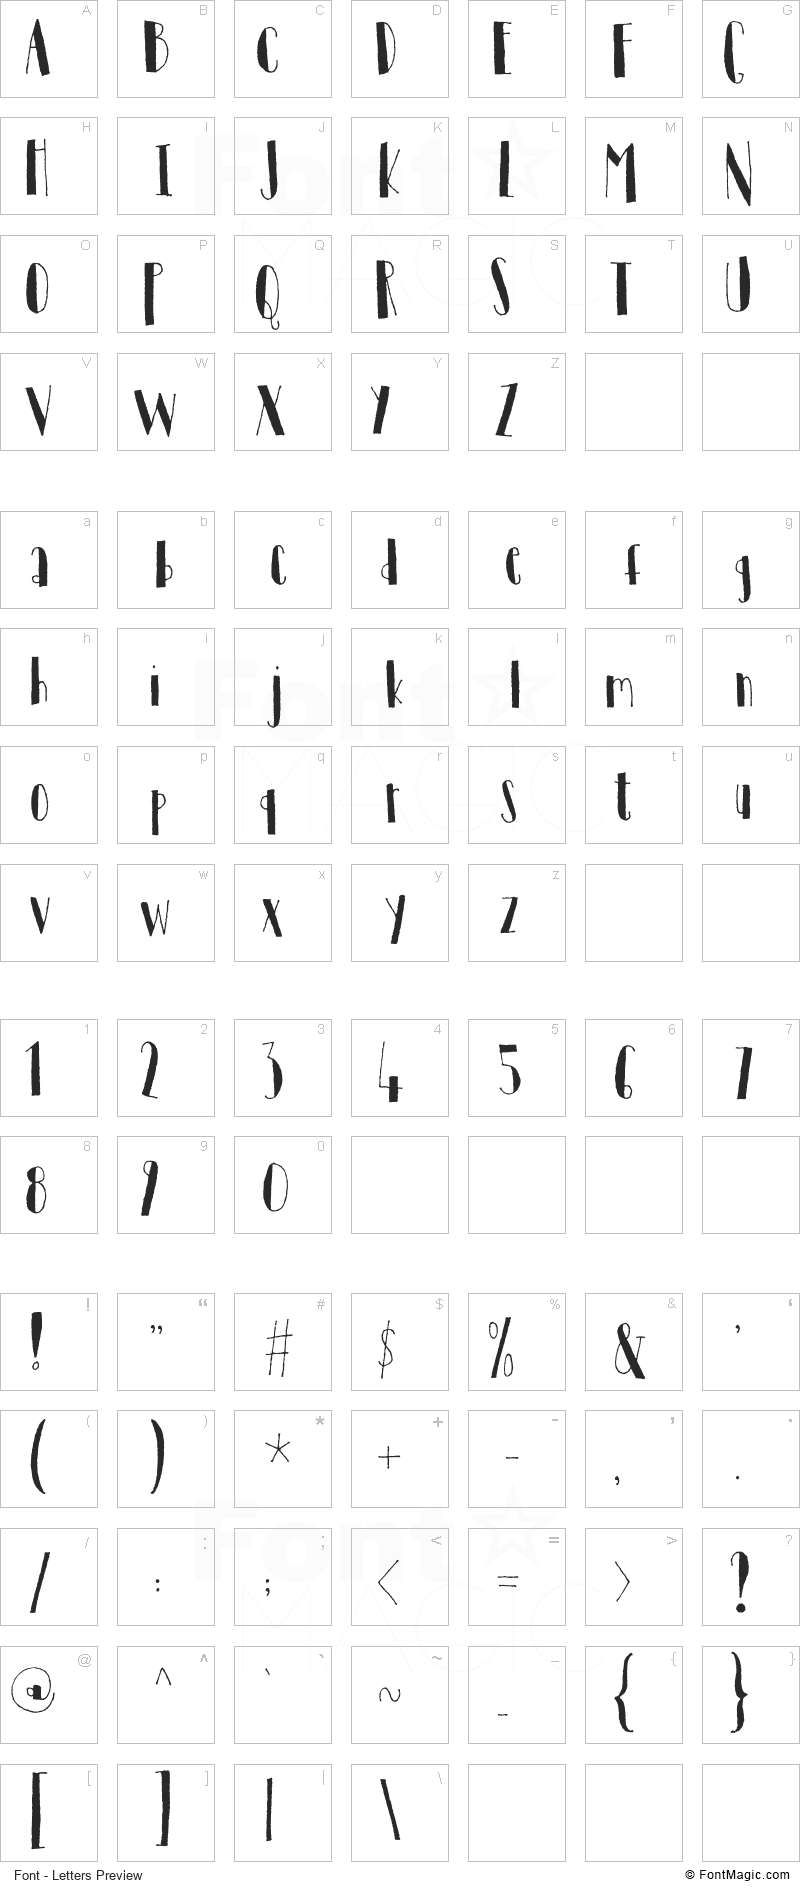 Tantamount Font - All Latters Preview Chart